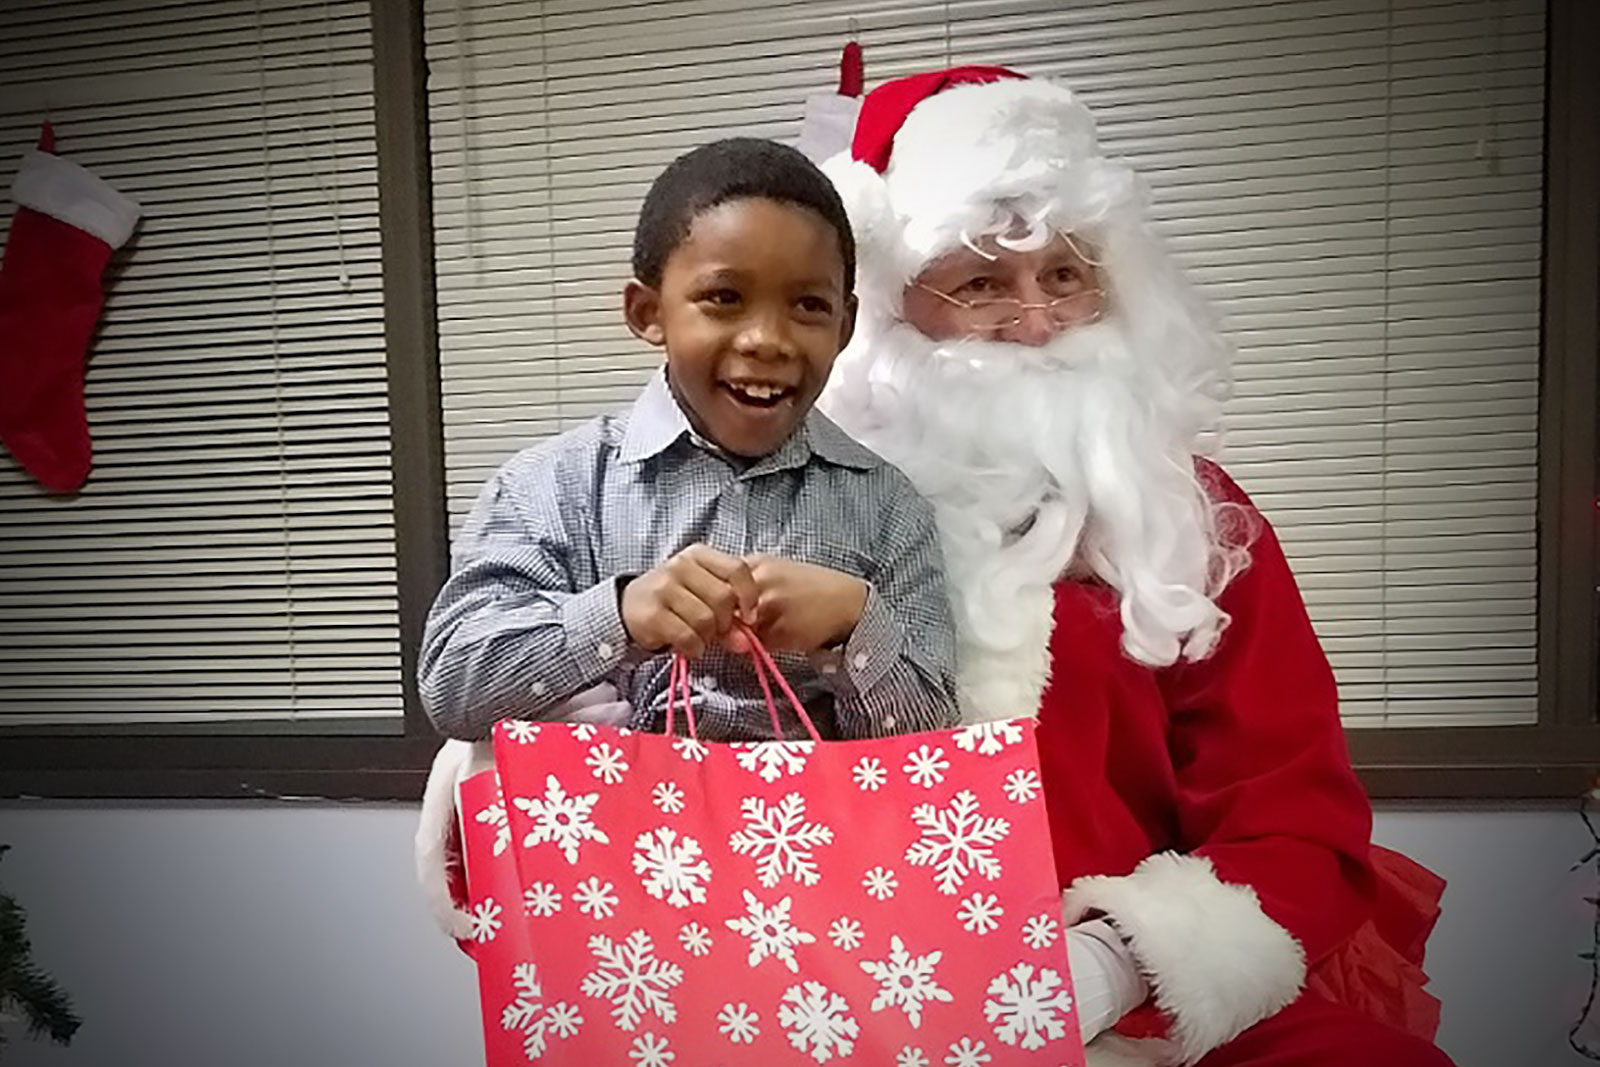 a very happy little boy meeting Santa Claus